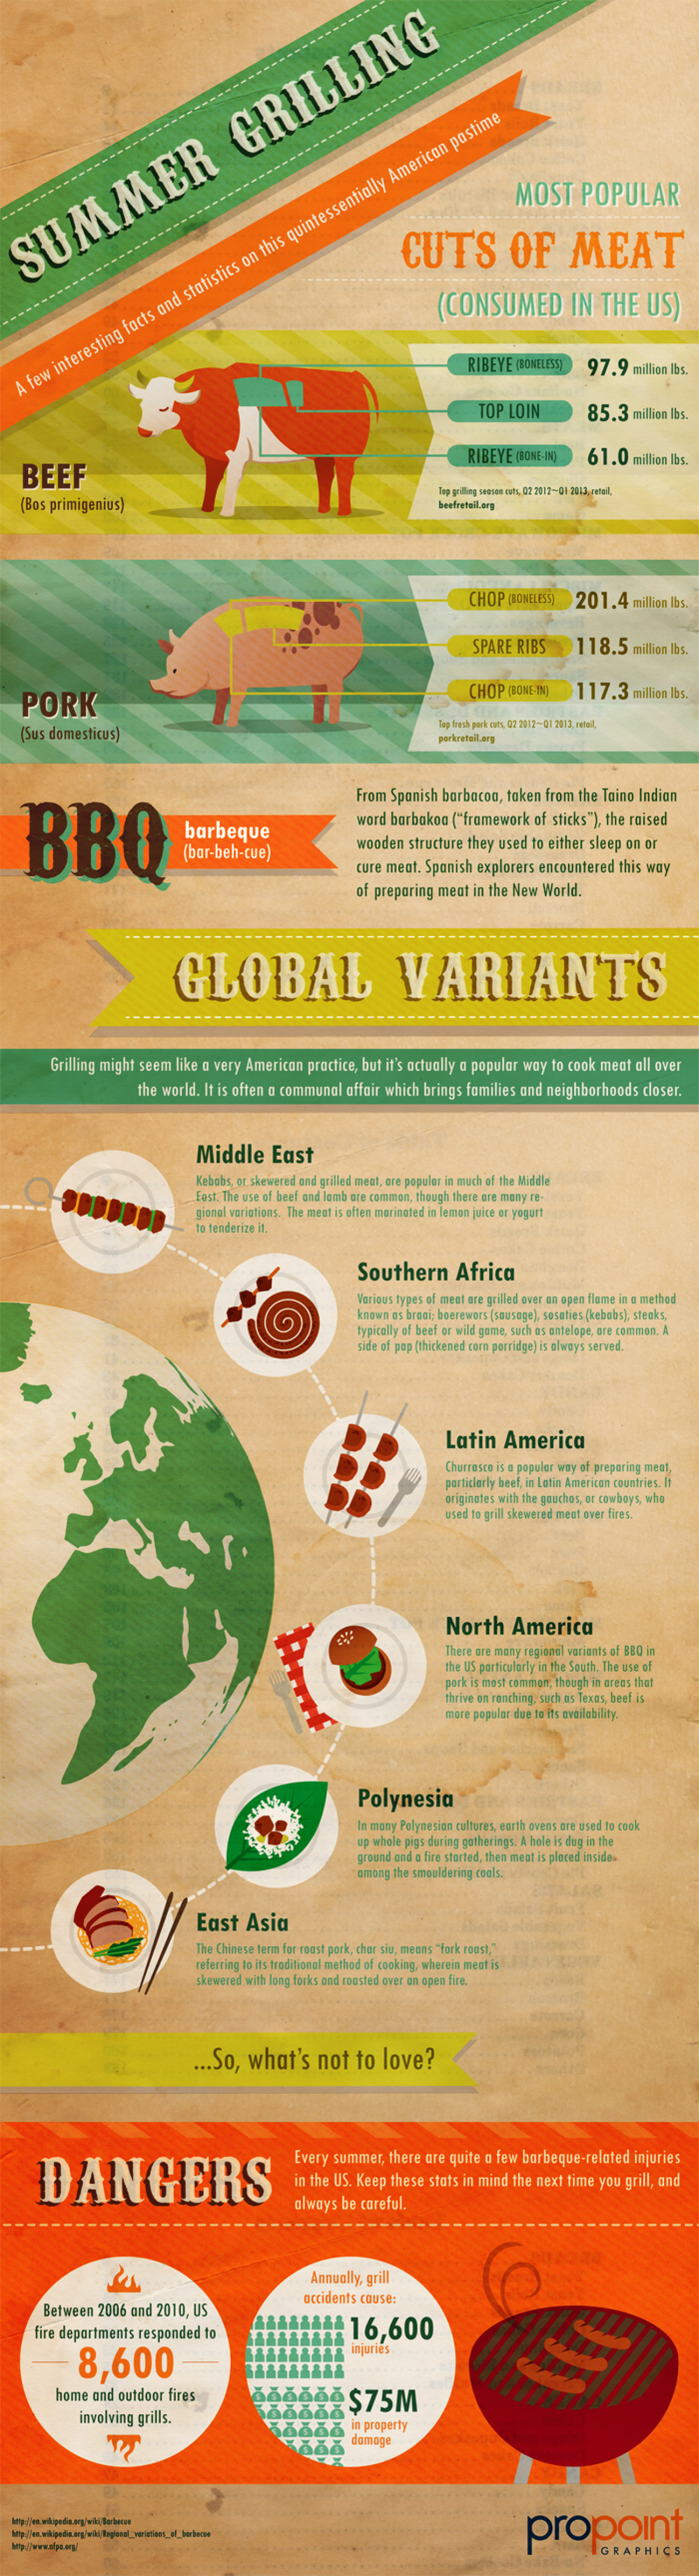 Summer Grilling Facts Infographic